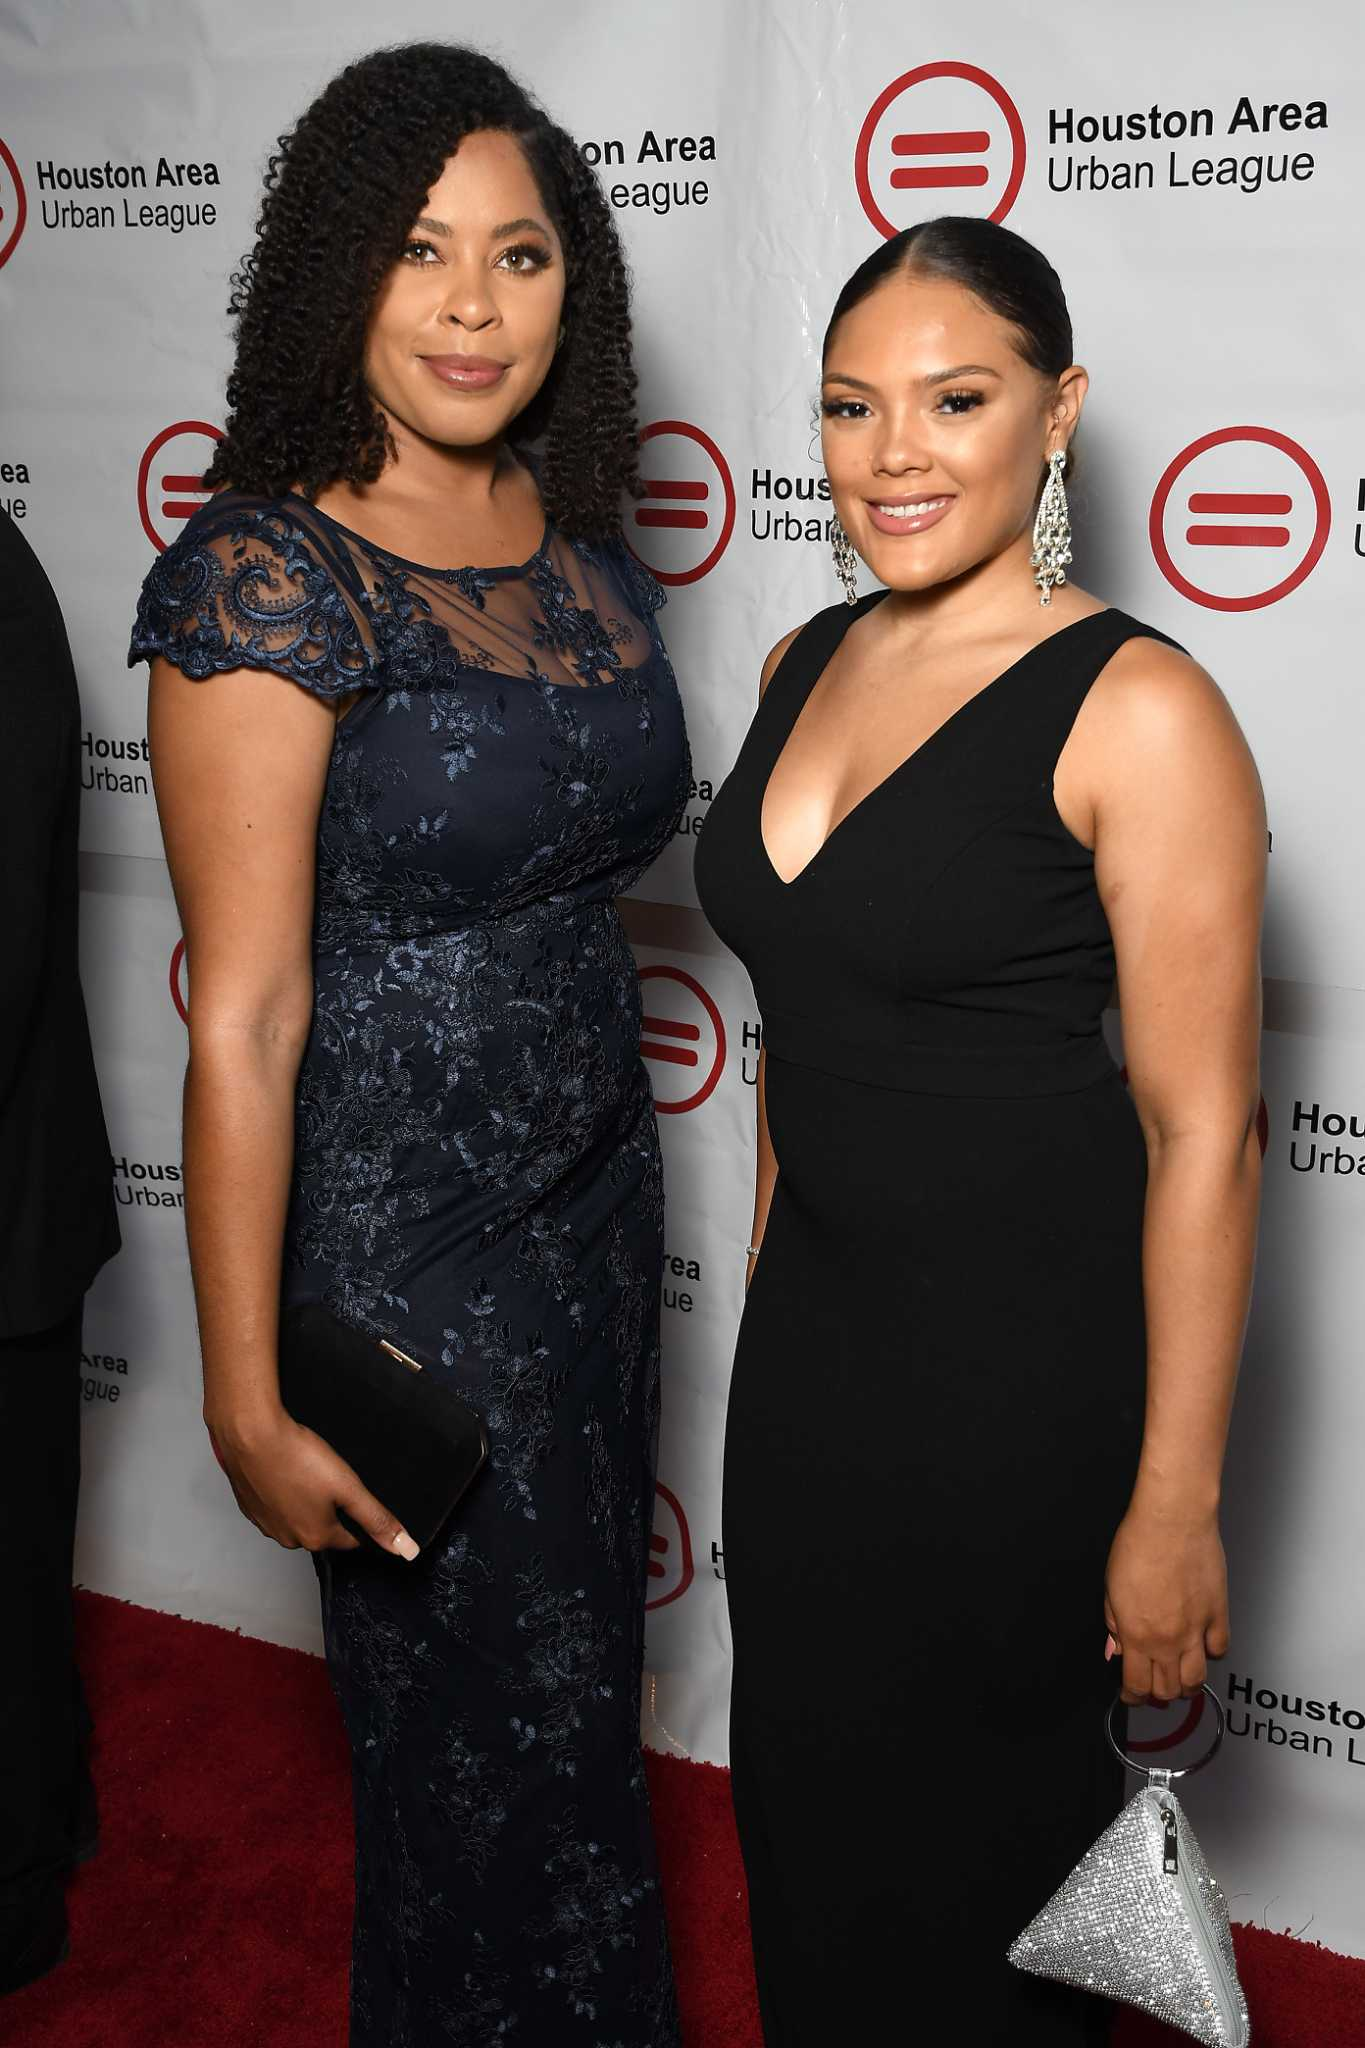 "Houston Area Urban League ""Equal Opportunity Gala"" salutes trailblazing women, raises $700K"